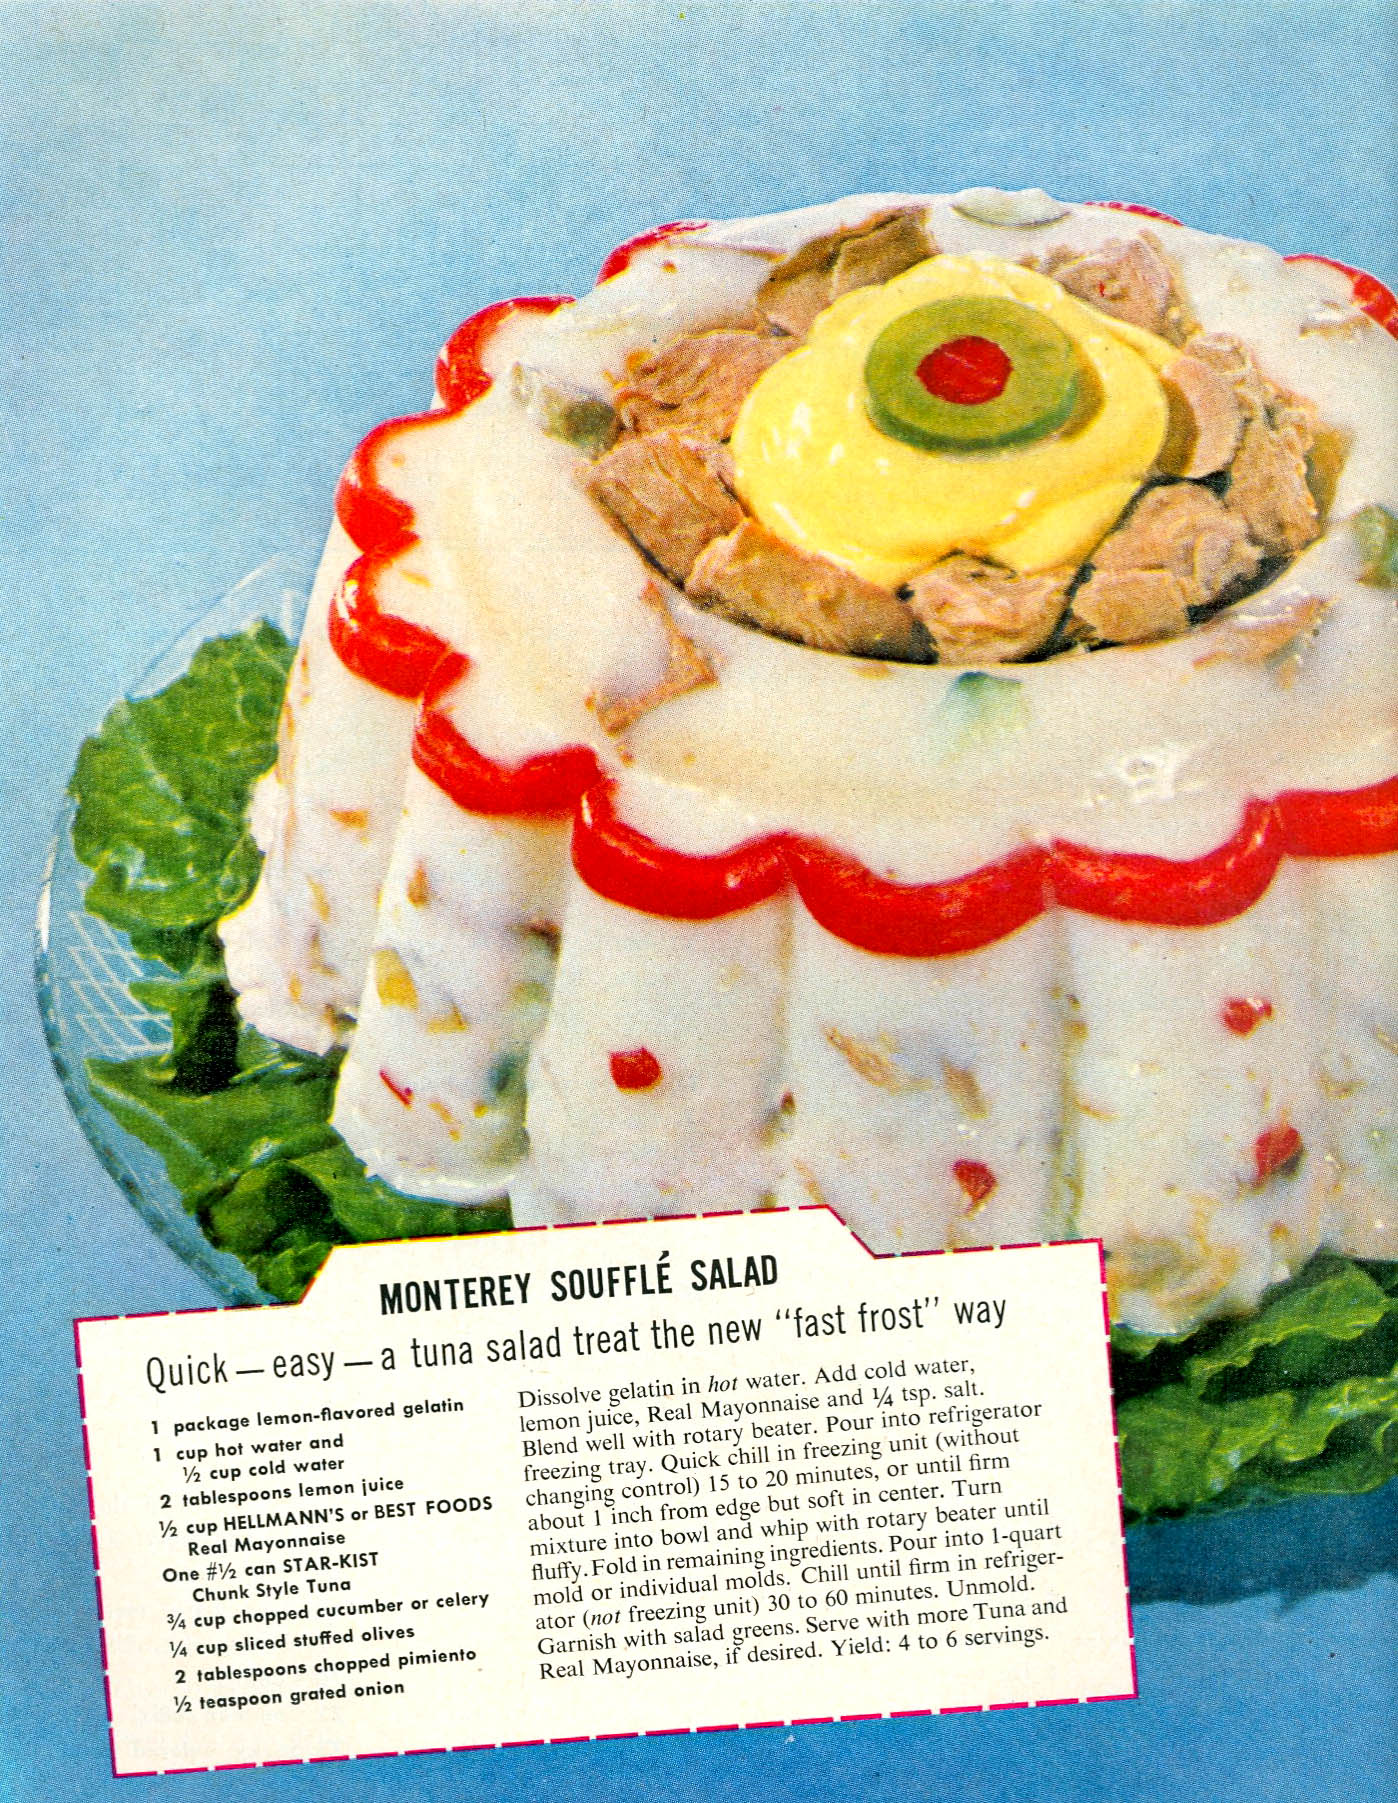 meals-in-a-mold-3